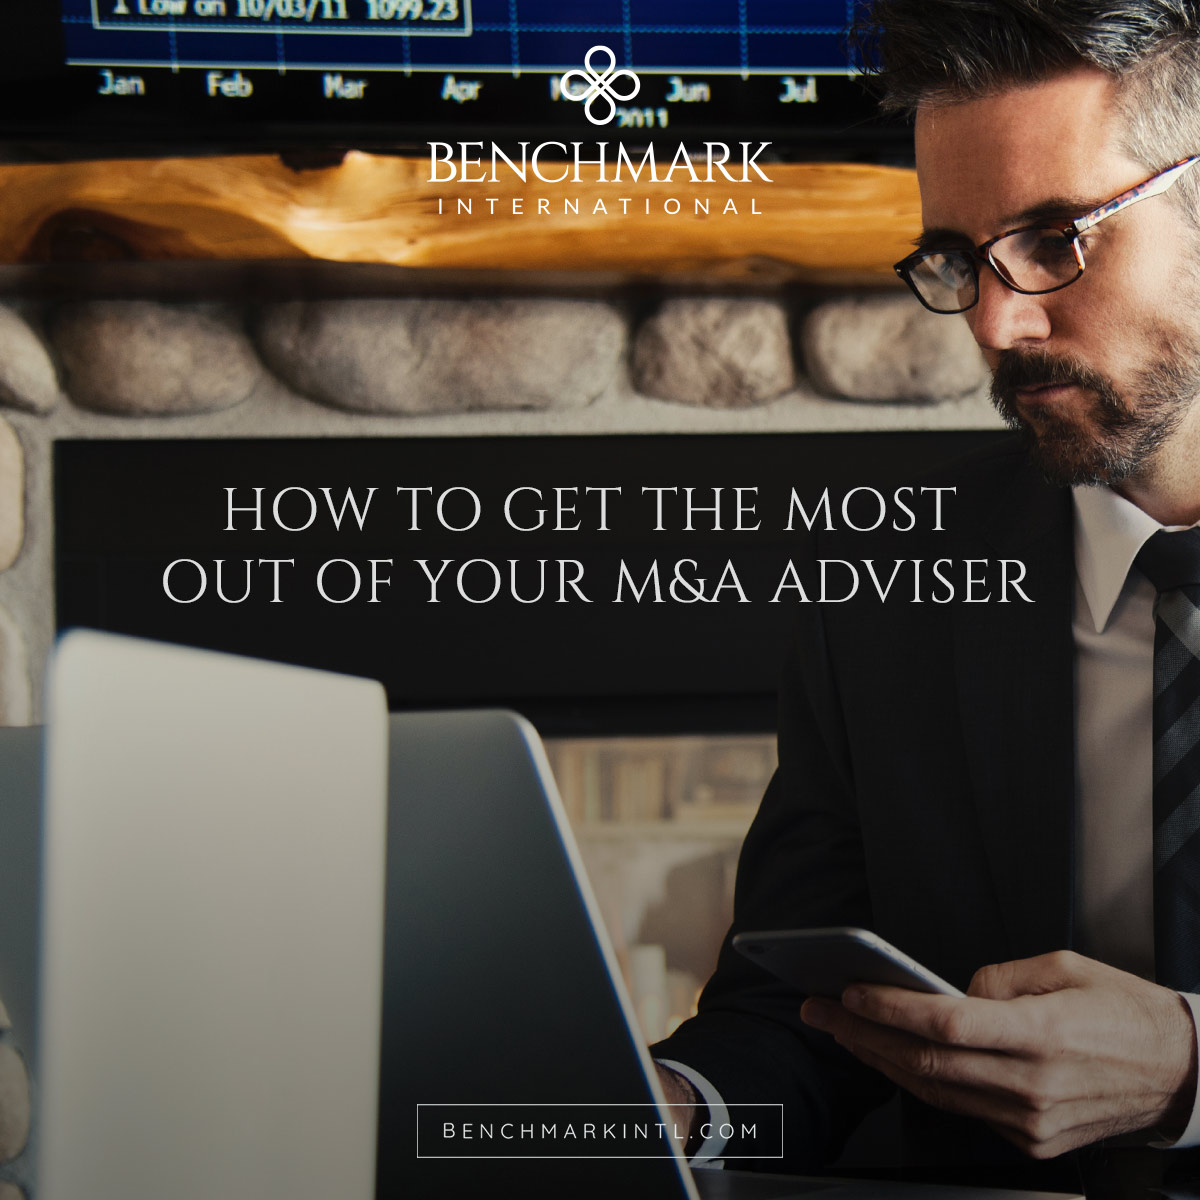 How to Get the Most out of your M&A Adviser